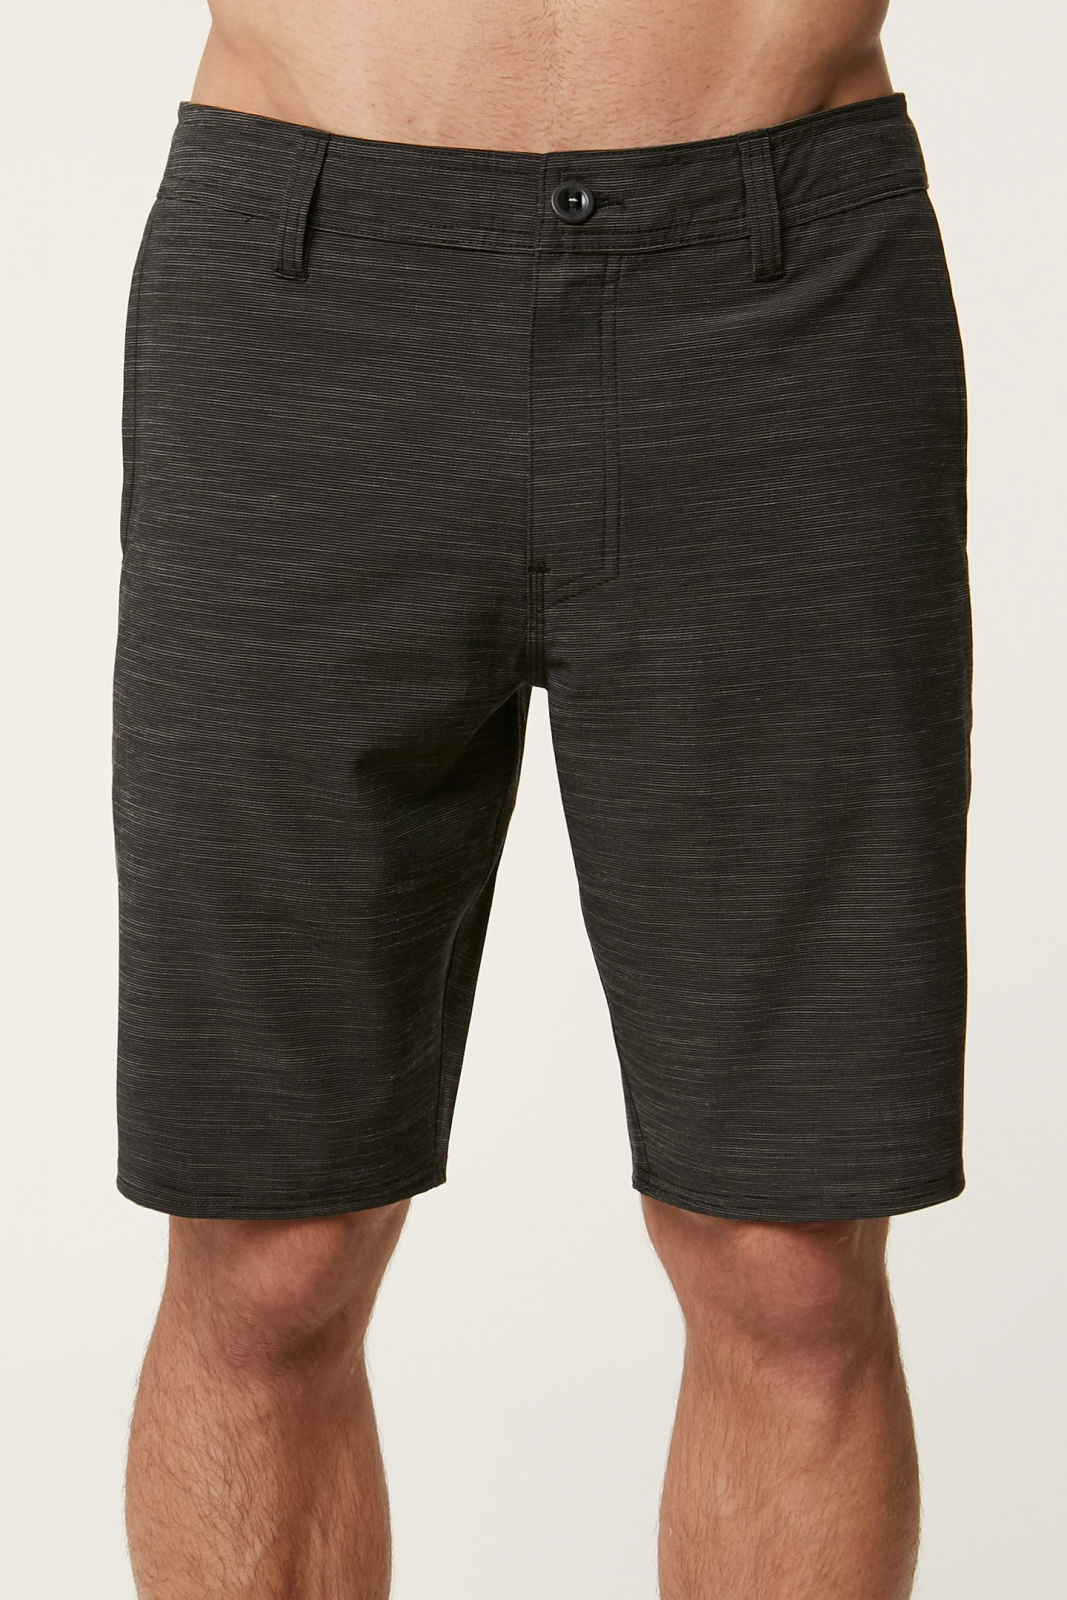 ONEILL LOCKED SLUB HYBRID SHORT 20